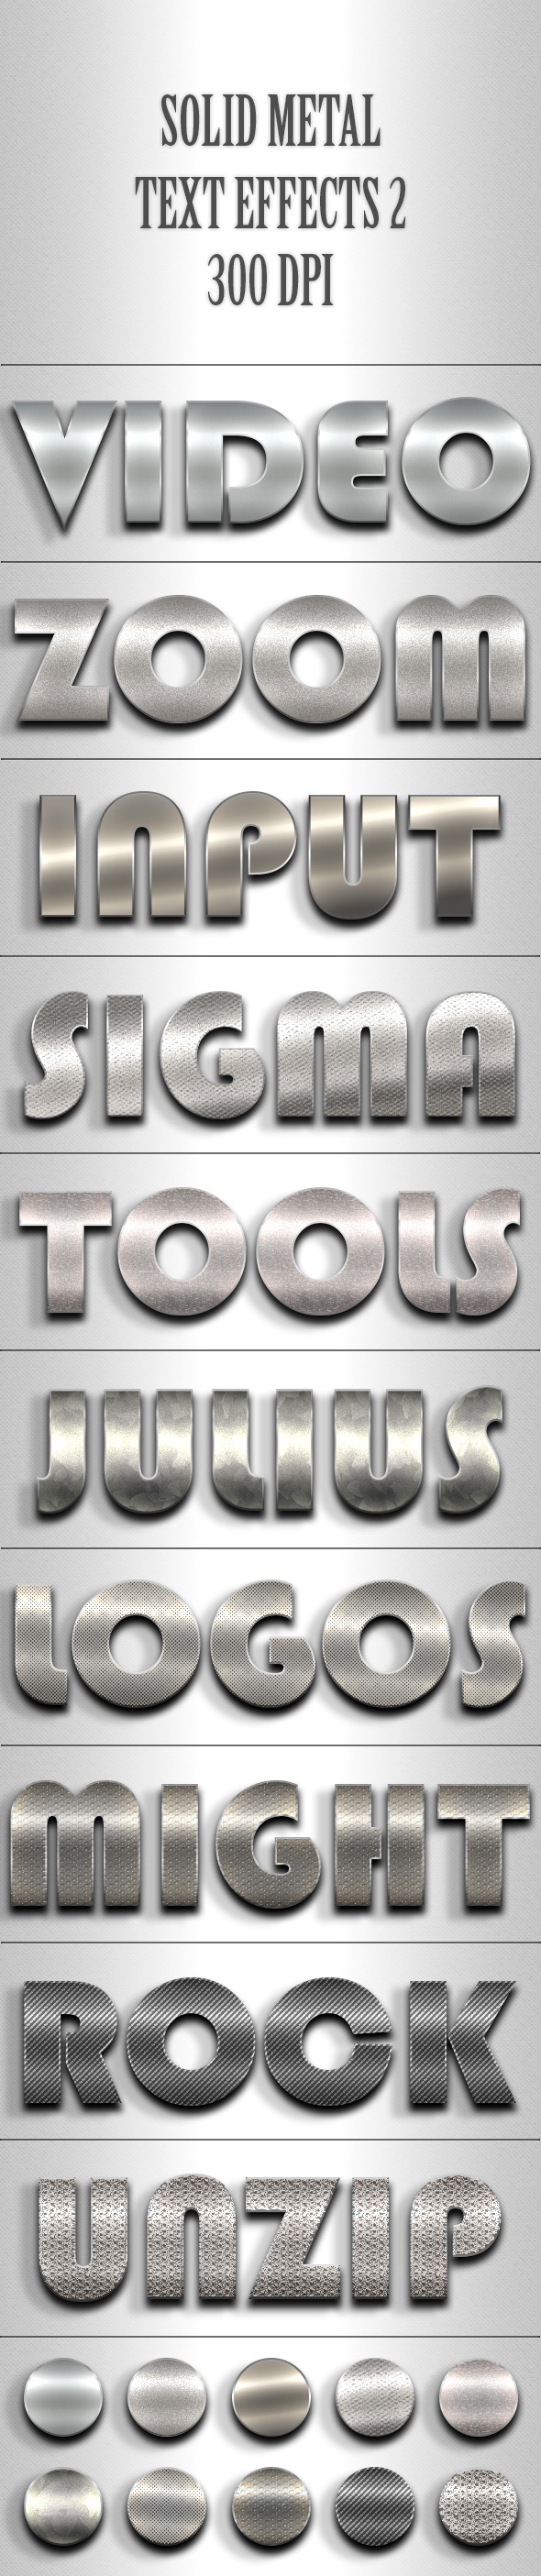 Solid Metal Text Effects 2